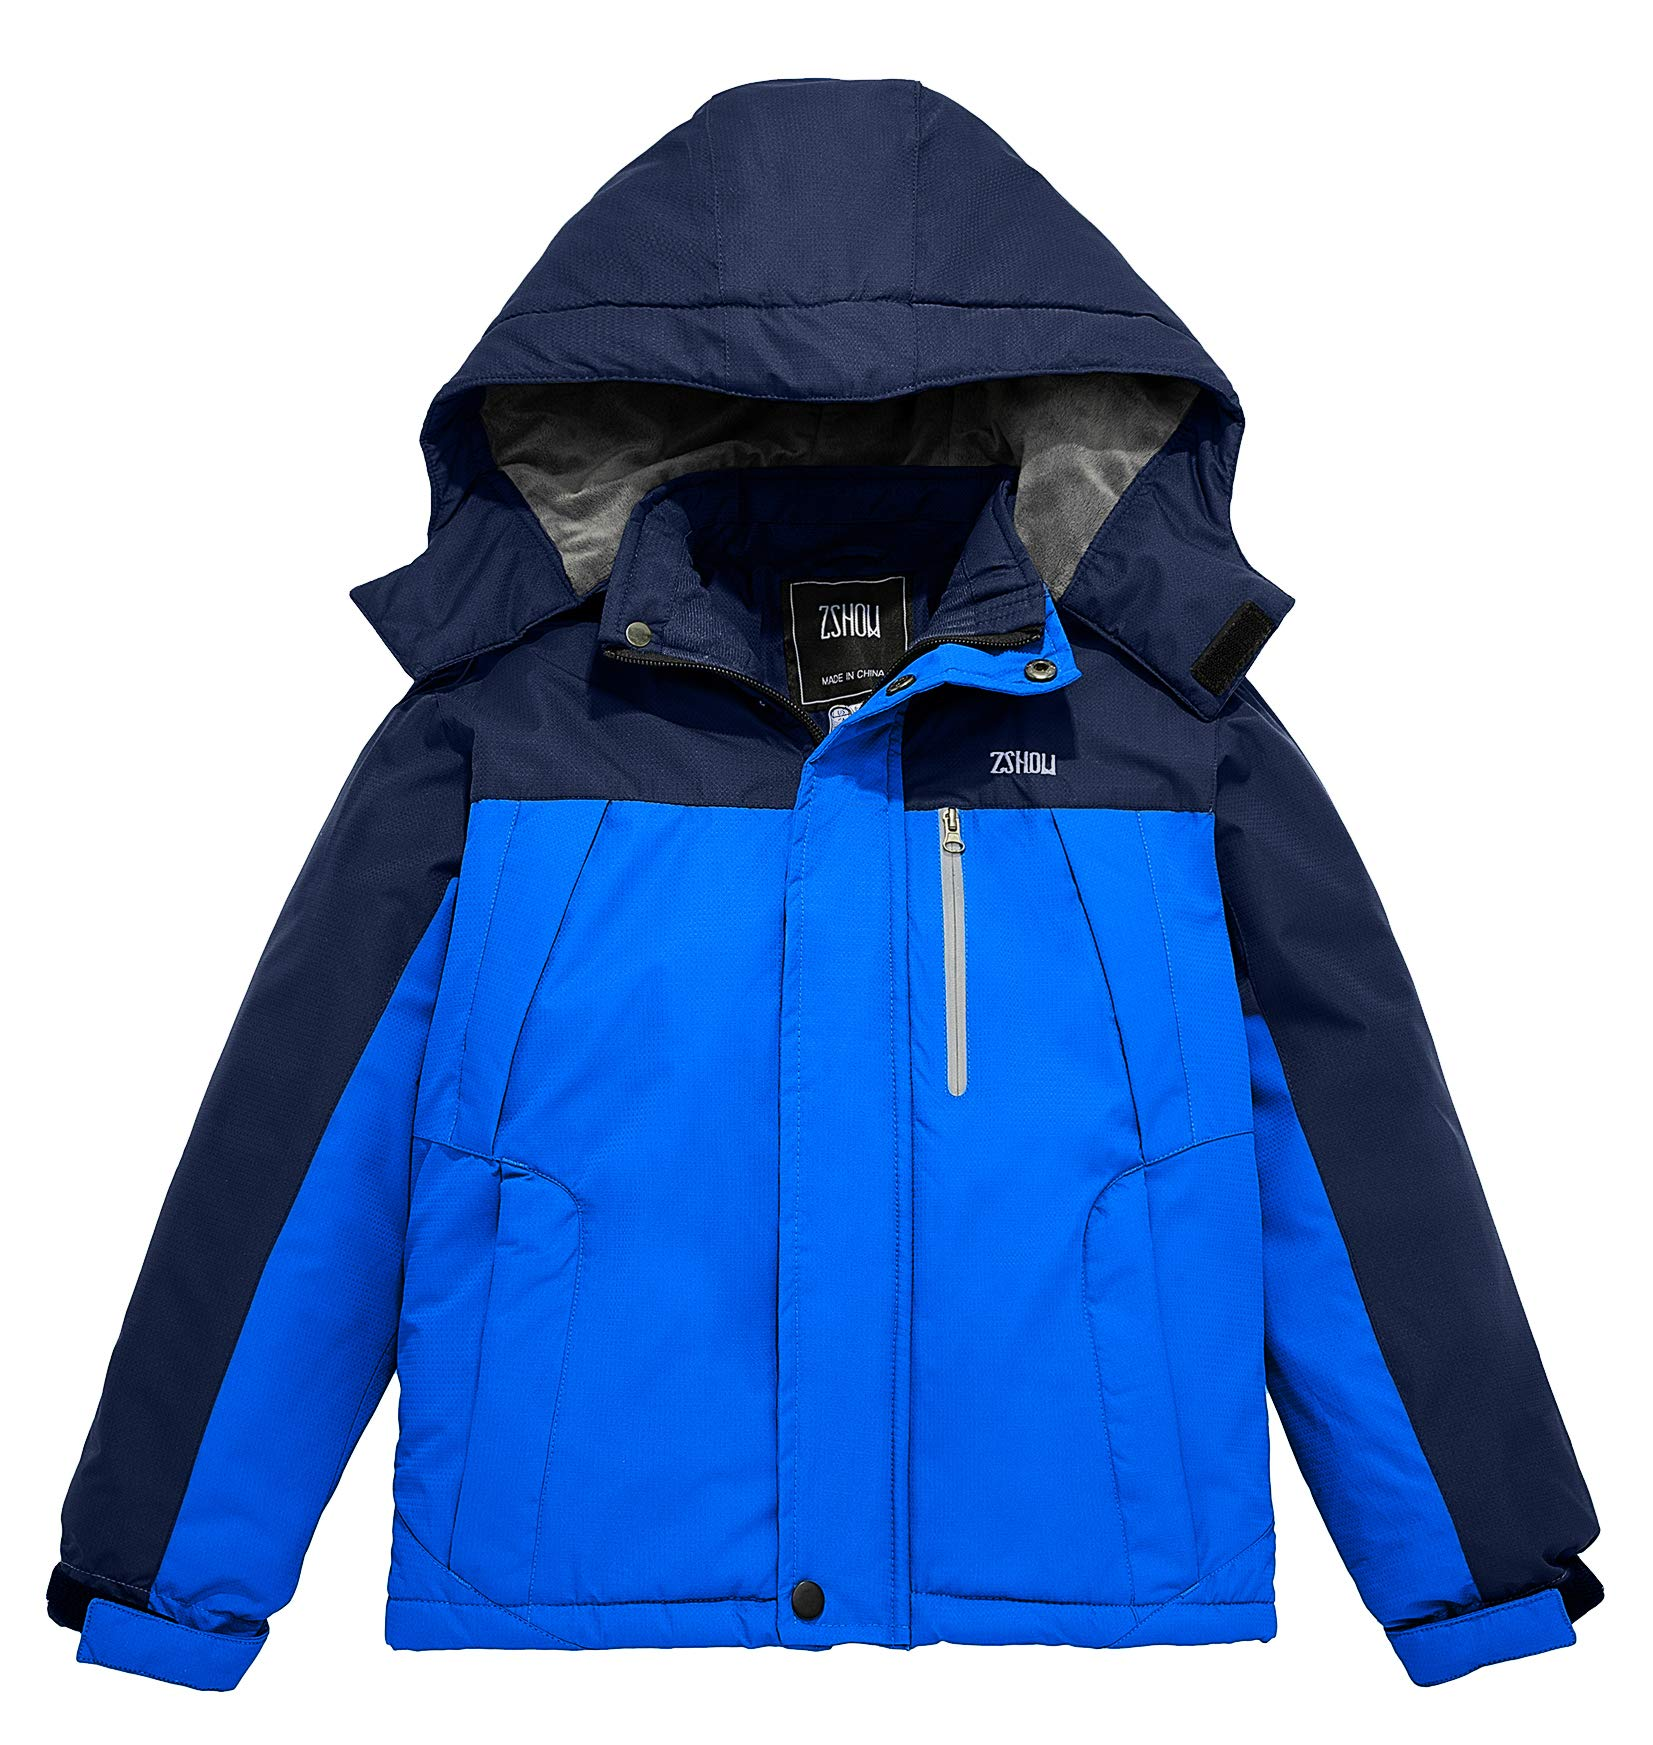 ZSHOW Boy's Waterproof Ski Jacket Windbproof Thick Winter Parka Coat with Detachable Hood